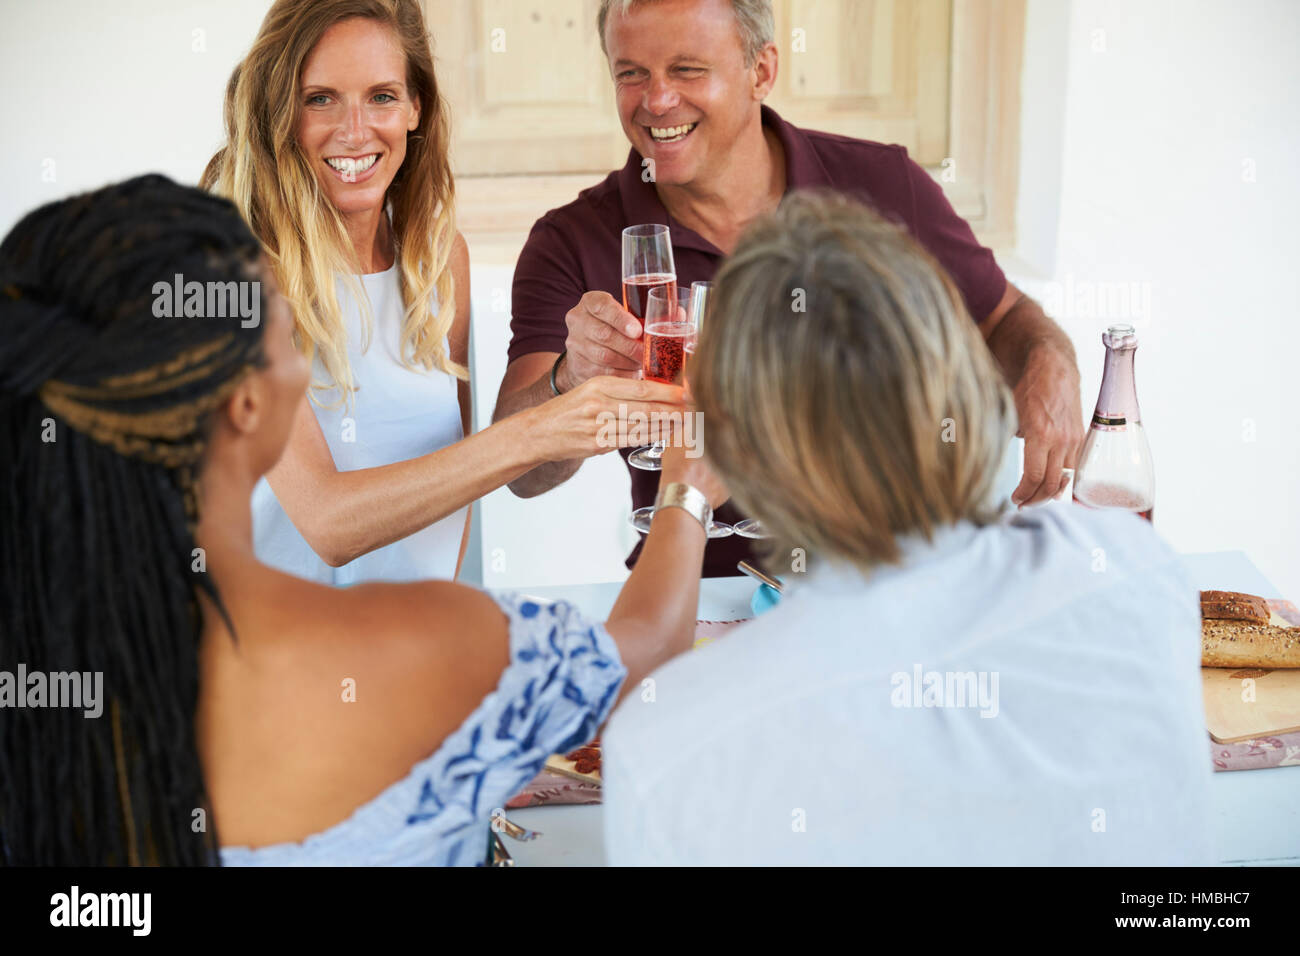 Two couples making a toast before dinner, close up - Stock Image